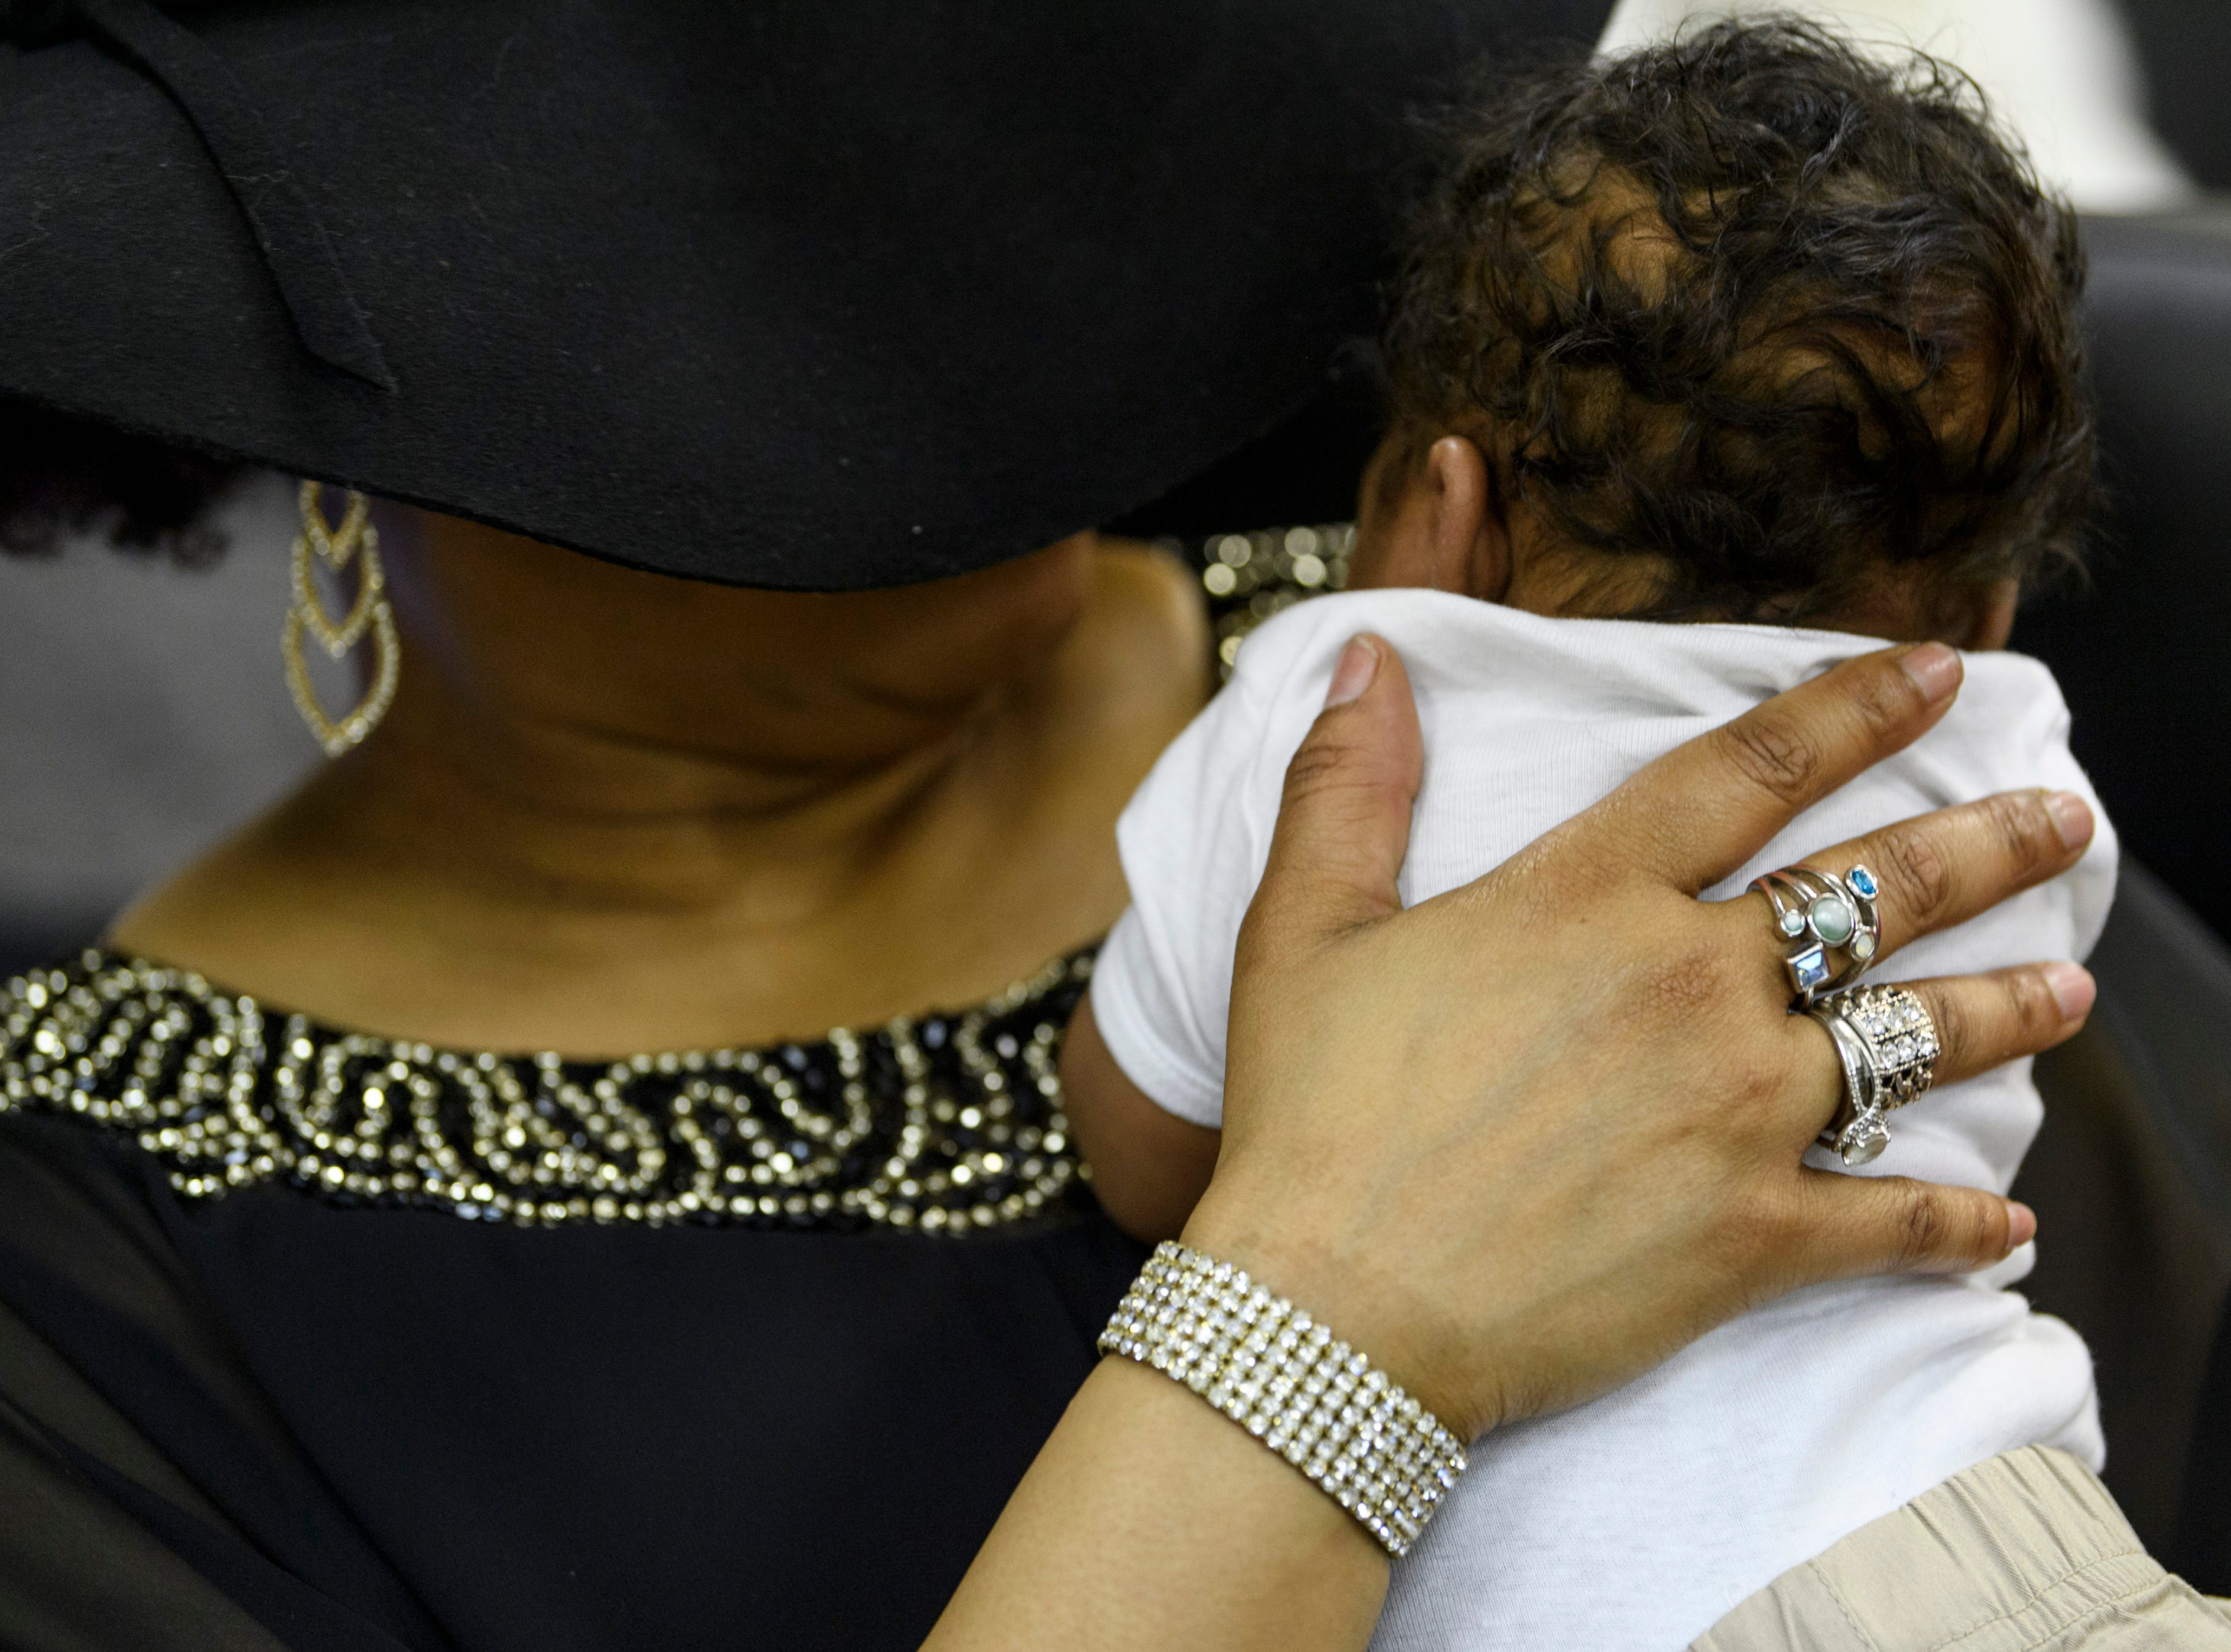 Pageant participant Mariama Black-Wilson holds her one-month-old grandson Ja'Zeon during a dinner break at the 5th Annual Glamorous Grandmother's Pageant held at the Greater St. James Community Recreation & Education Center in Evansville, Ind., Sunday, Feb. 4, 2018. Black-Wilson has seven children, three of them adopted, and three grandchildren.